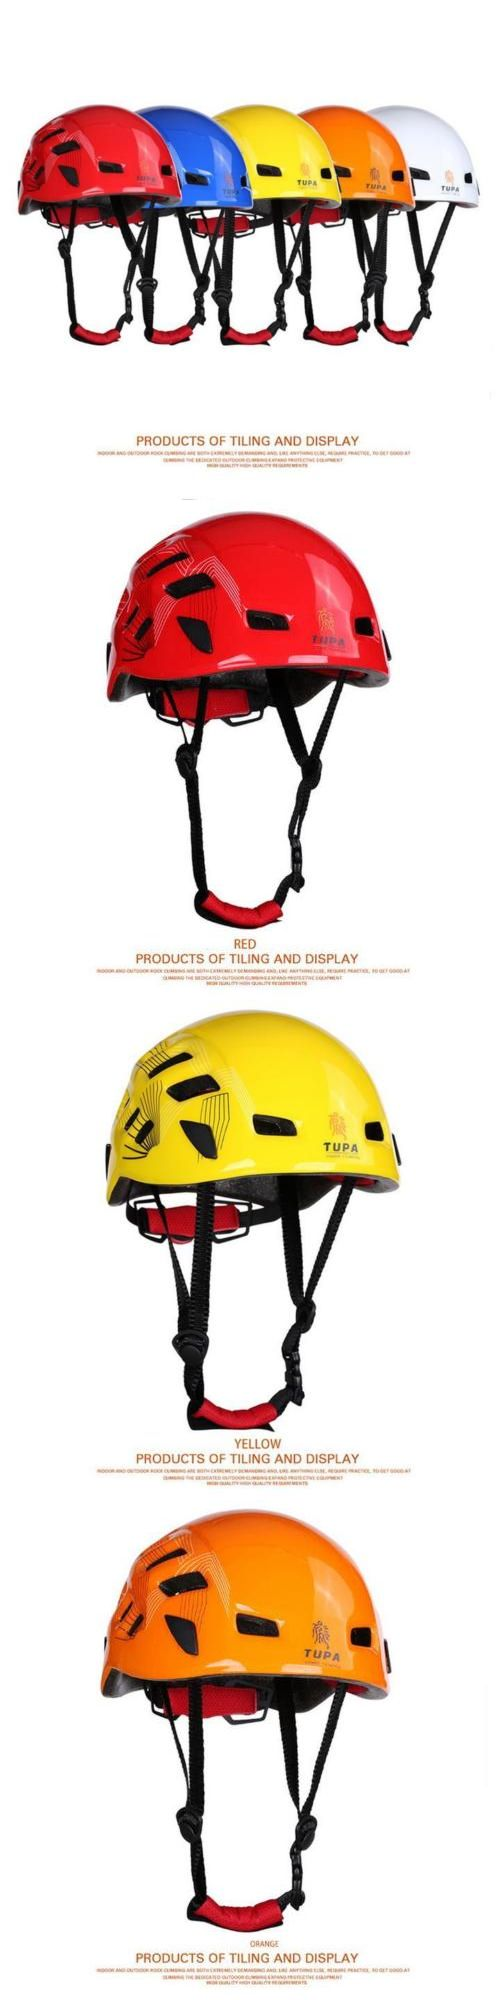 Other Climbing Clothing 158977: Safety Rock Climbing Tree Carving Downhill Rescue Helmet Gear Equipment $ -> BUY IT NOW ONLY: $45.99 on eBay!